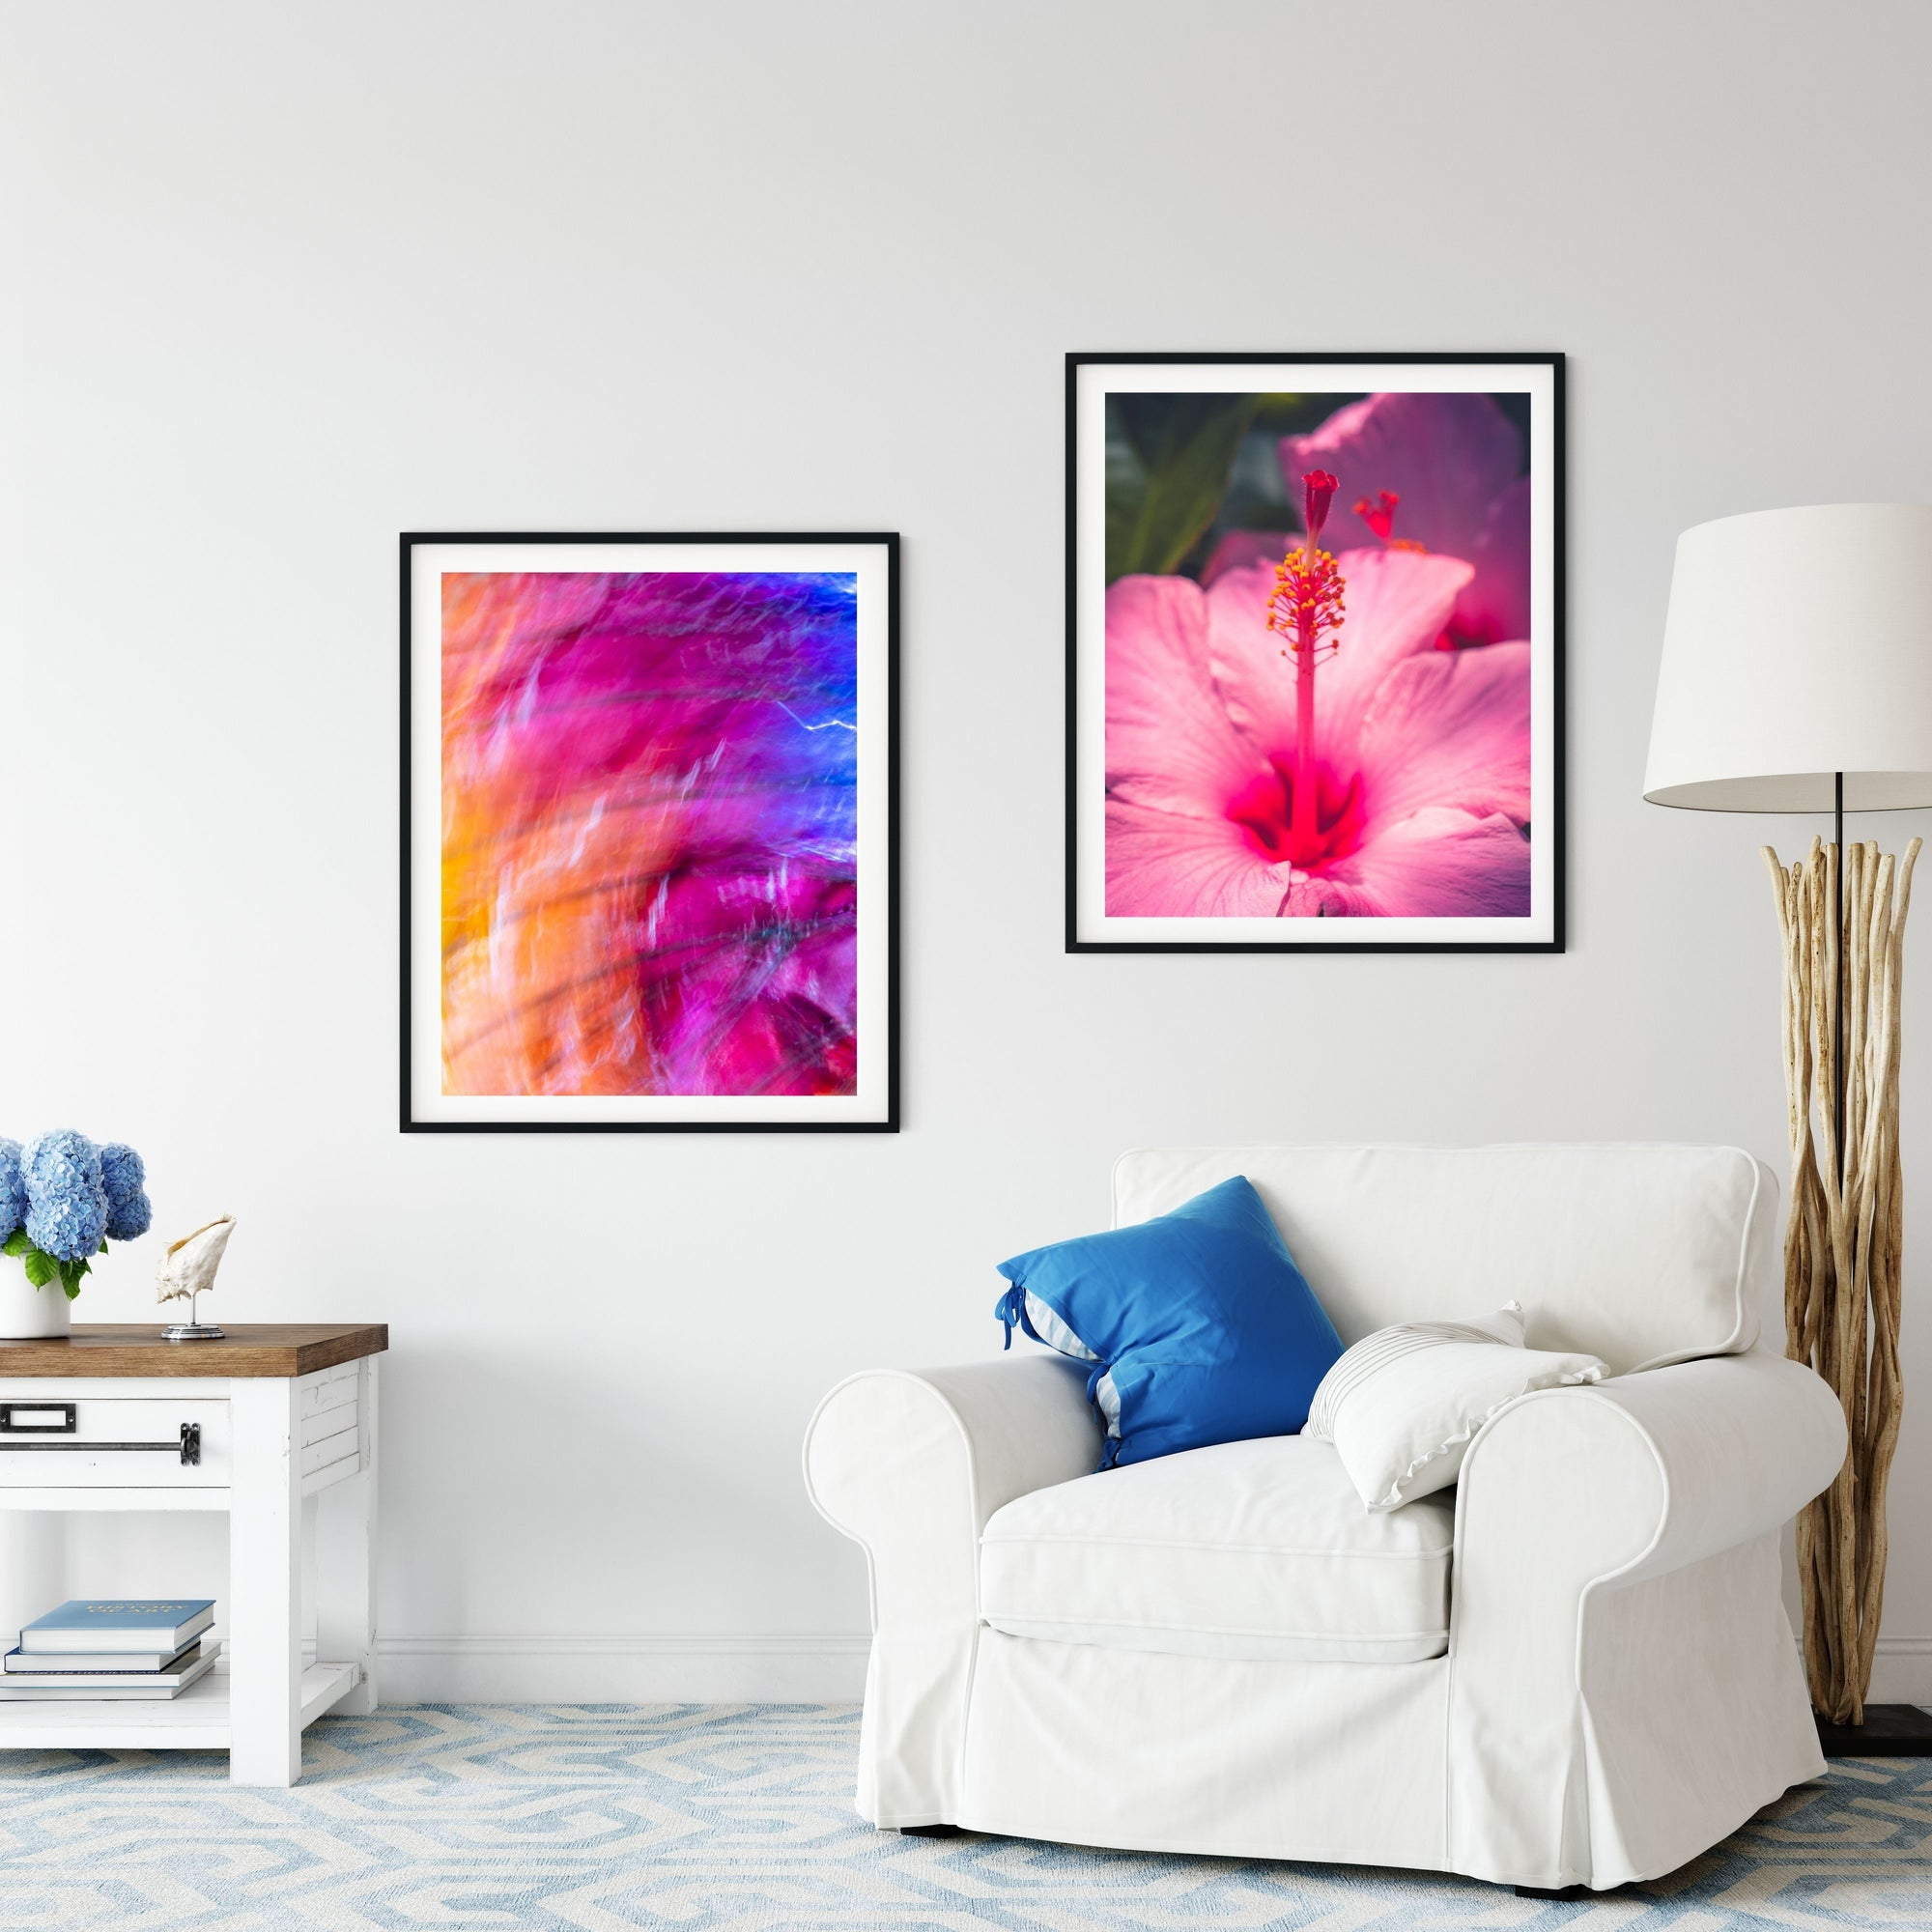 Christi Kraft Photography: art decor for authentic, bold individuals